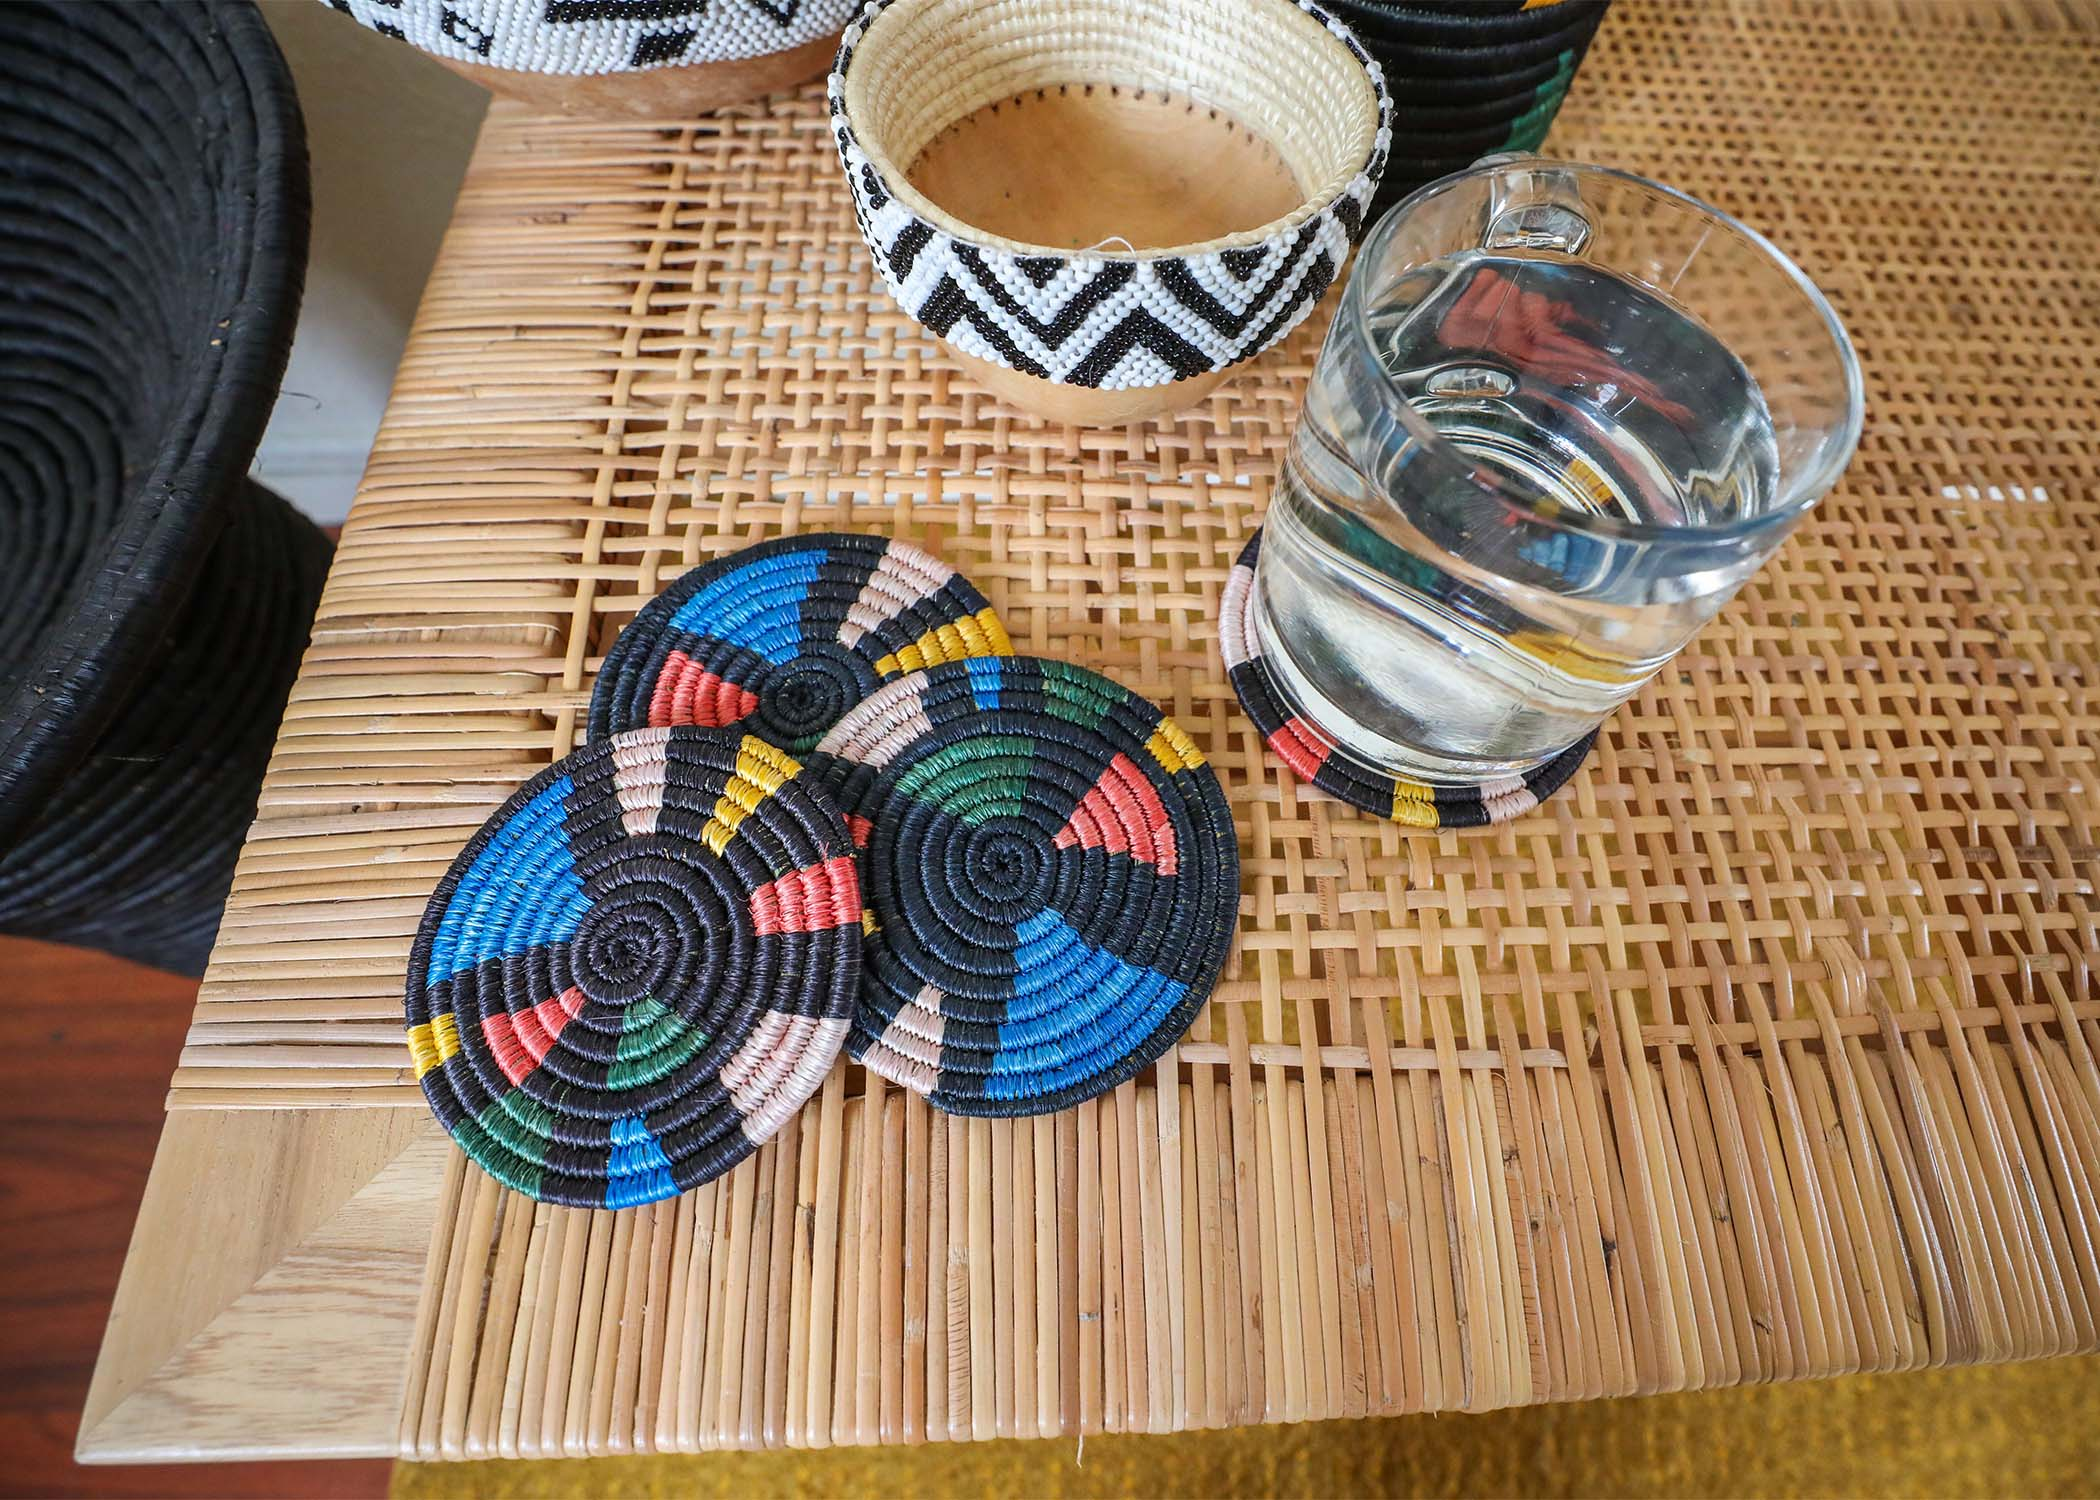 Black + Neon Mosaic Coasters, Set of 4 - KAZI - Artisan made high quality home decor and wall art